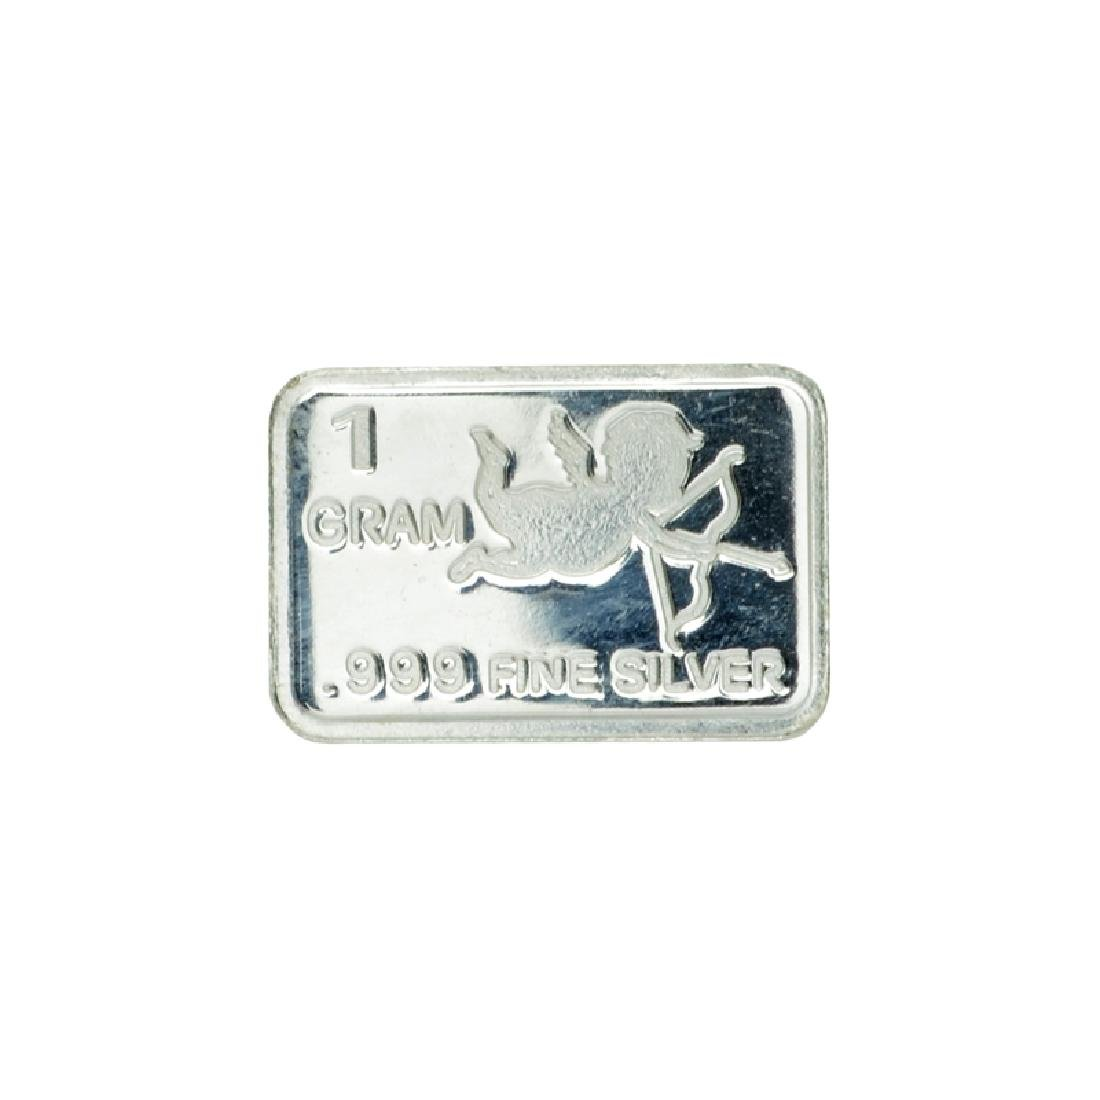 1 Gram Cupid Design .999 Fine Silver Bar